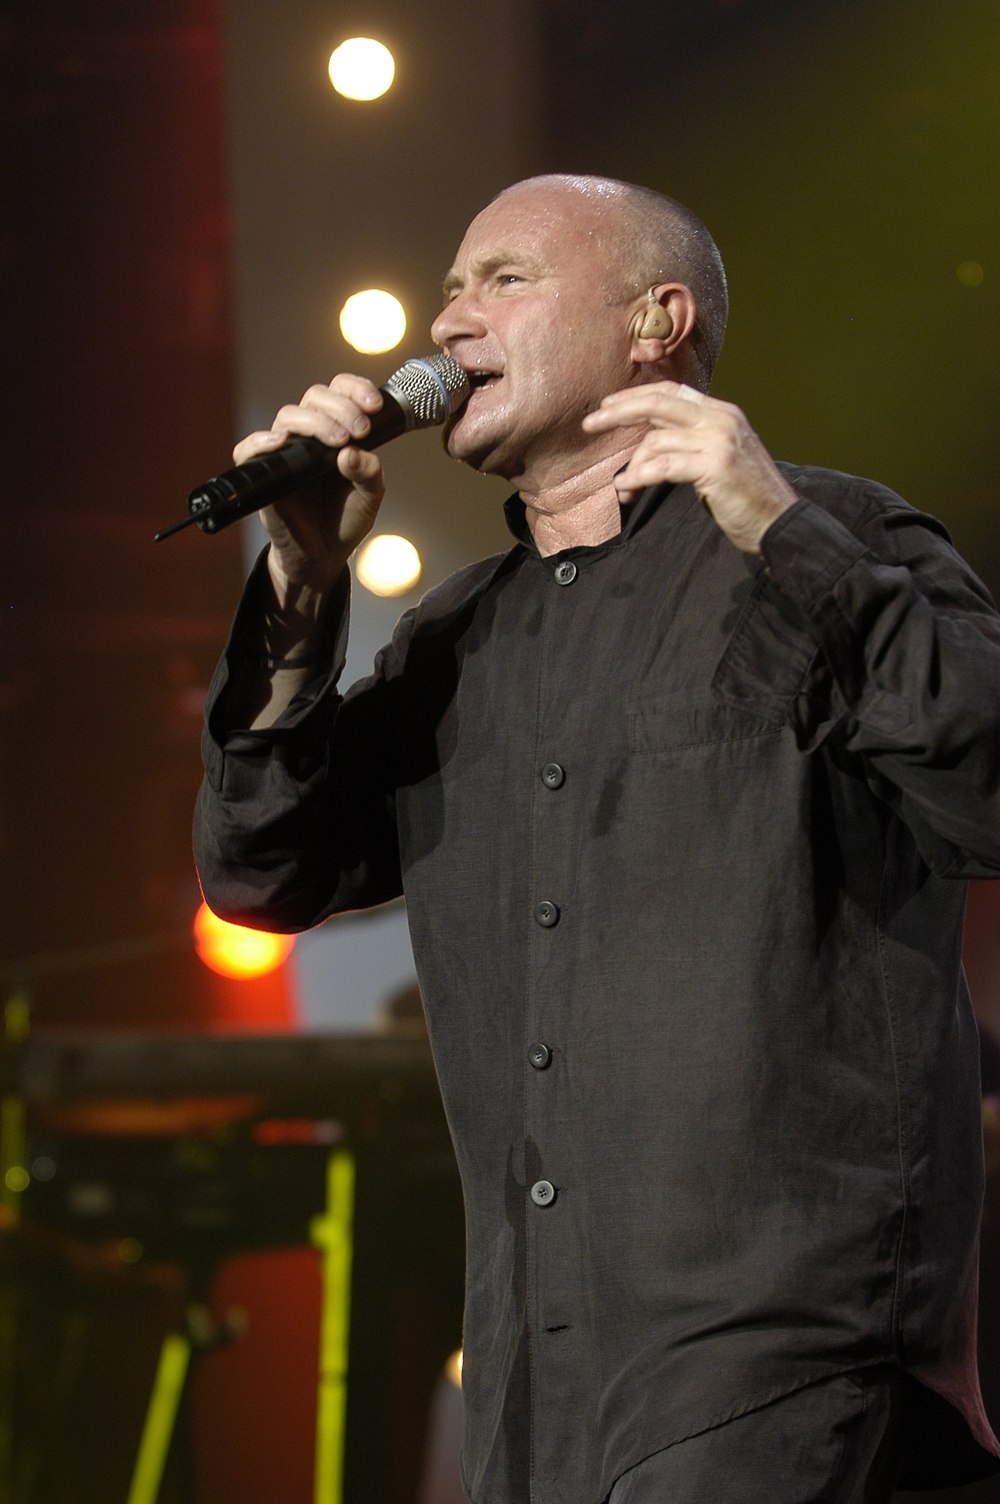 review phil collins live in montreux 2004 access2music. Black Bedroom Furniture Sets. Home Design Ideas